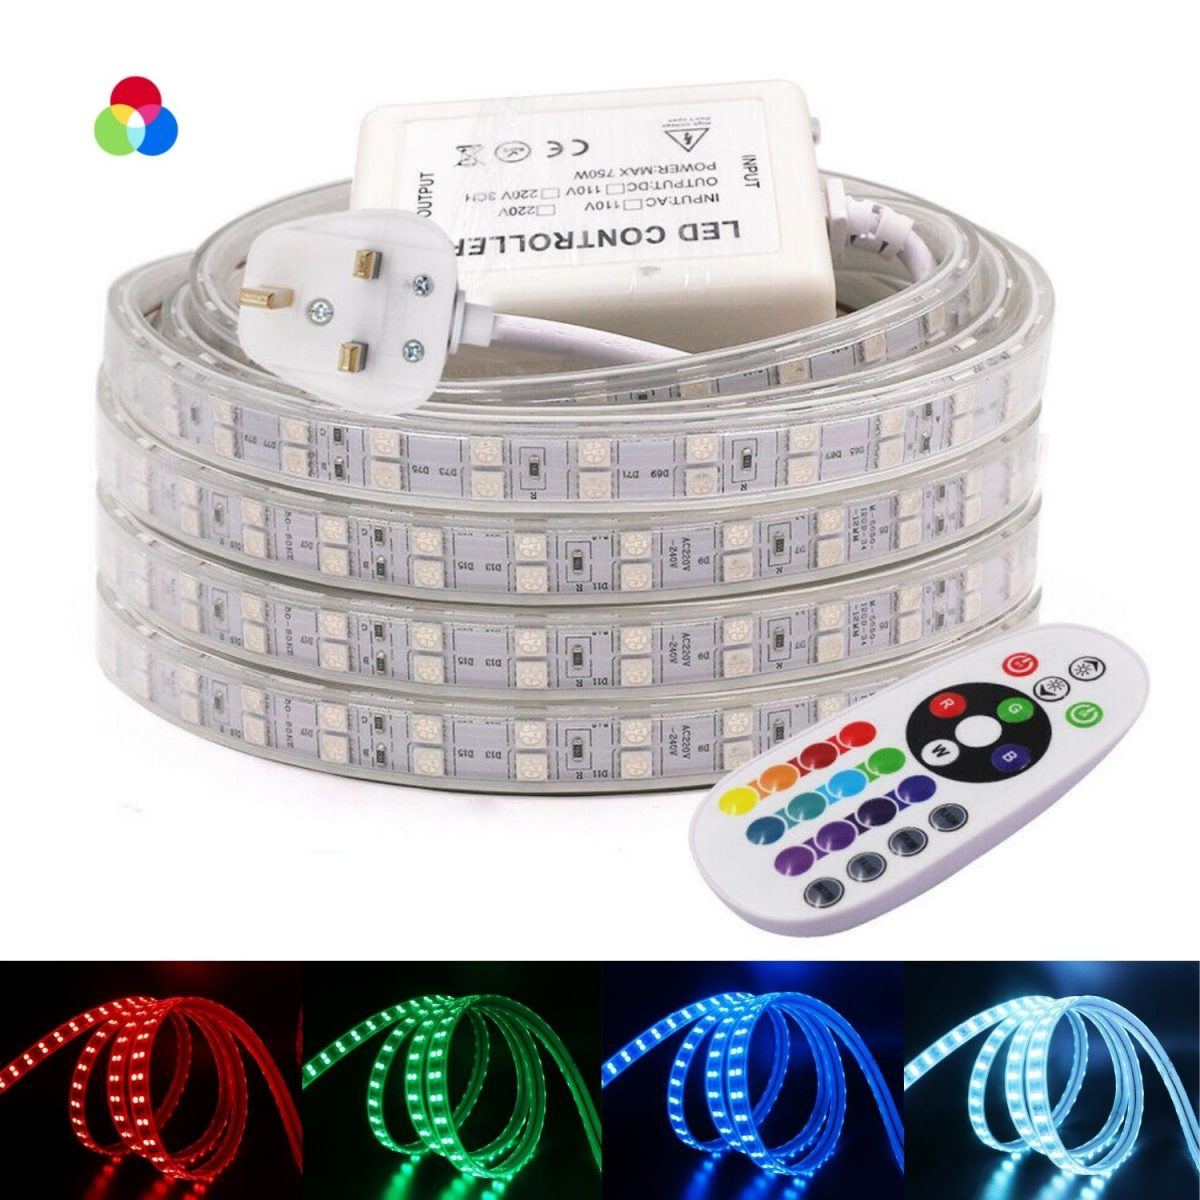 RGB LED Strip 220V 120LED_m Wireless Bluetooth (4)